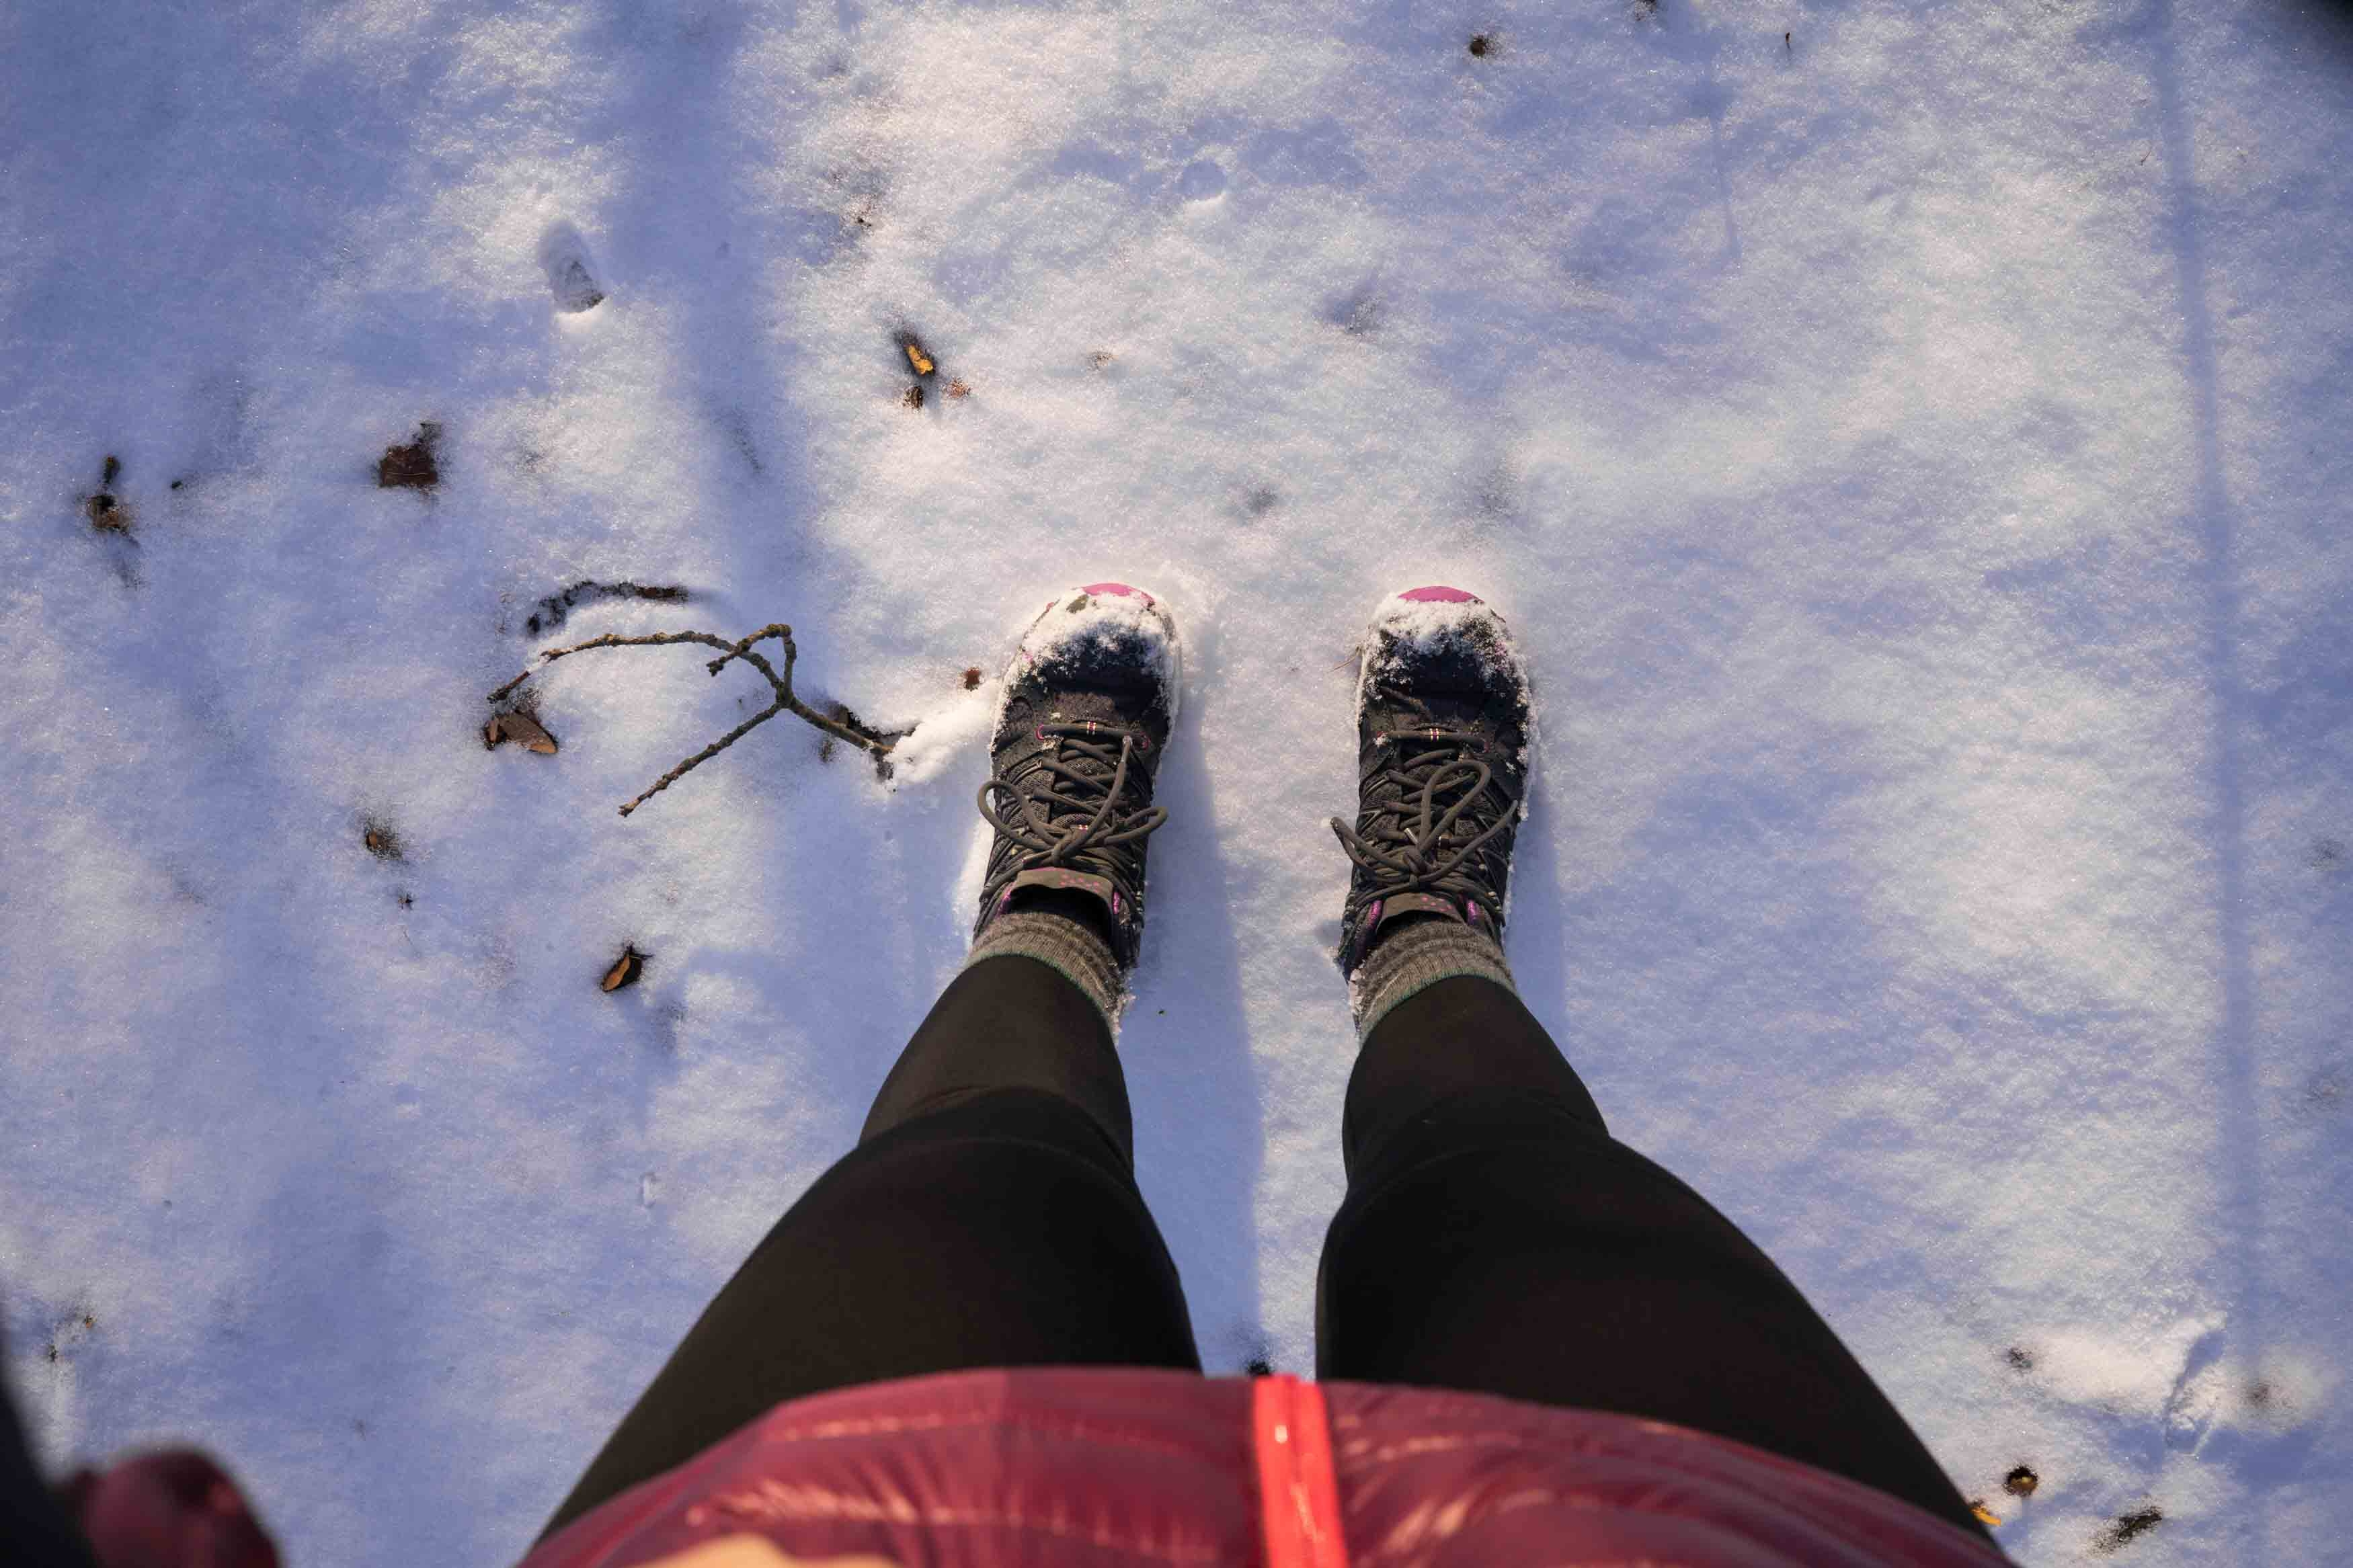 f0b6e4327ae Gear Review: The North Face Ultra Fastpack Mid GTX Boots - The Trek